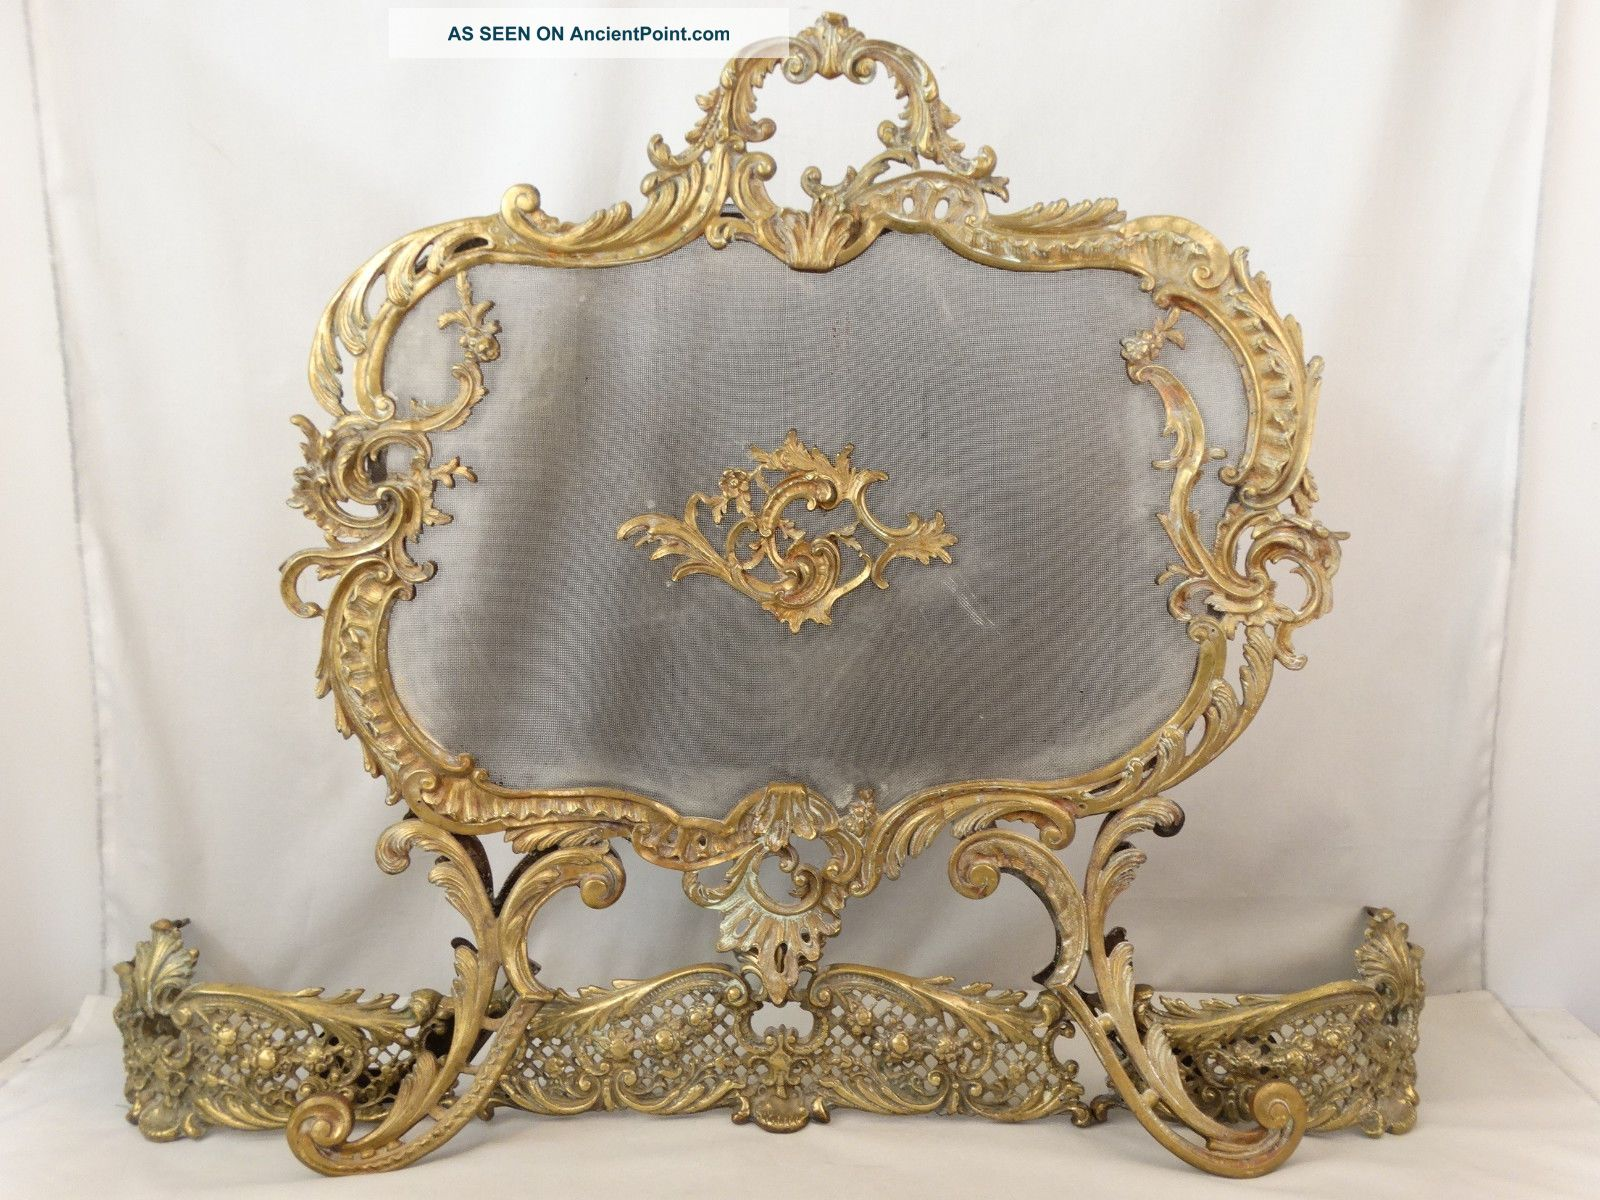 19thc Antique French Rococo Floral Victorian Bronze Fireplace Fire Screen Fender Hearth Ware photo